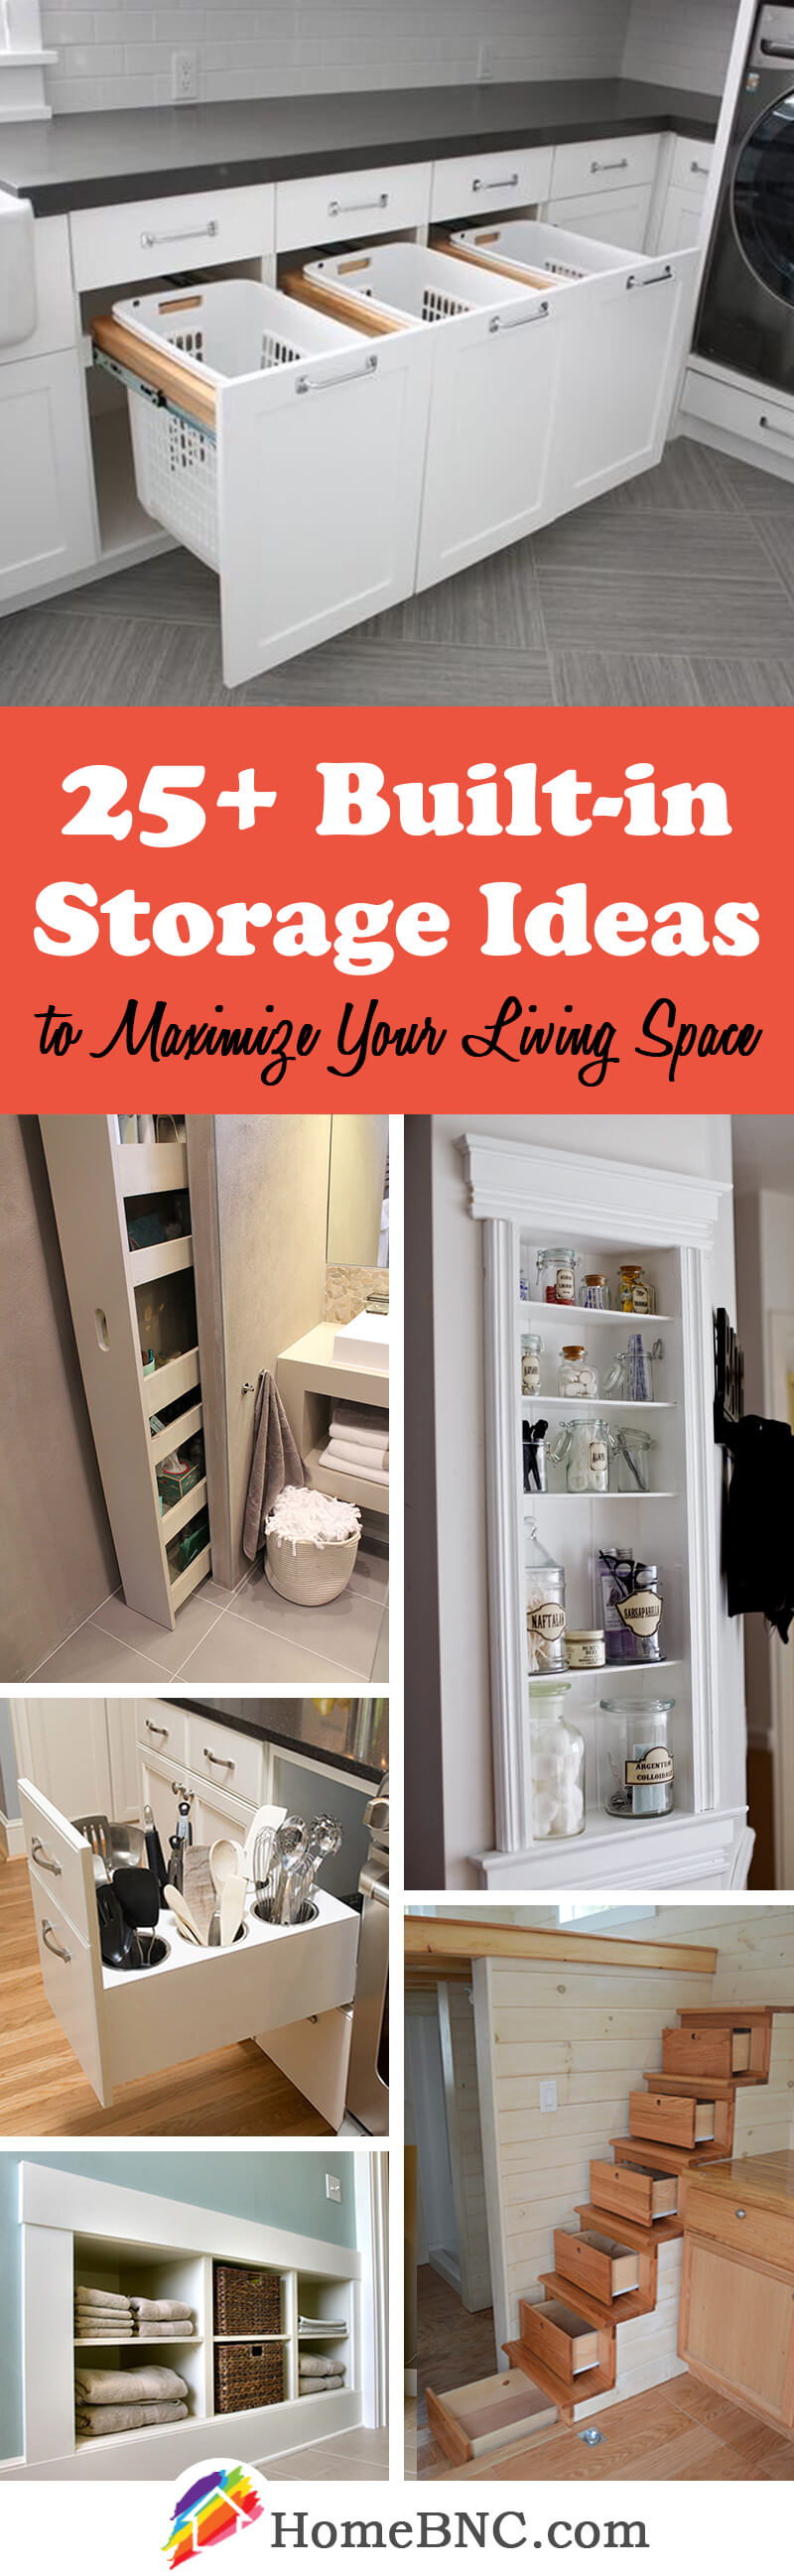 Cupboard Storage Ideas 25 Best Built In Storage Ideas And Designs For 2019